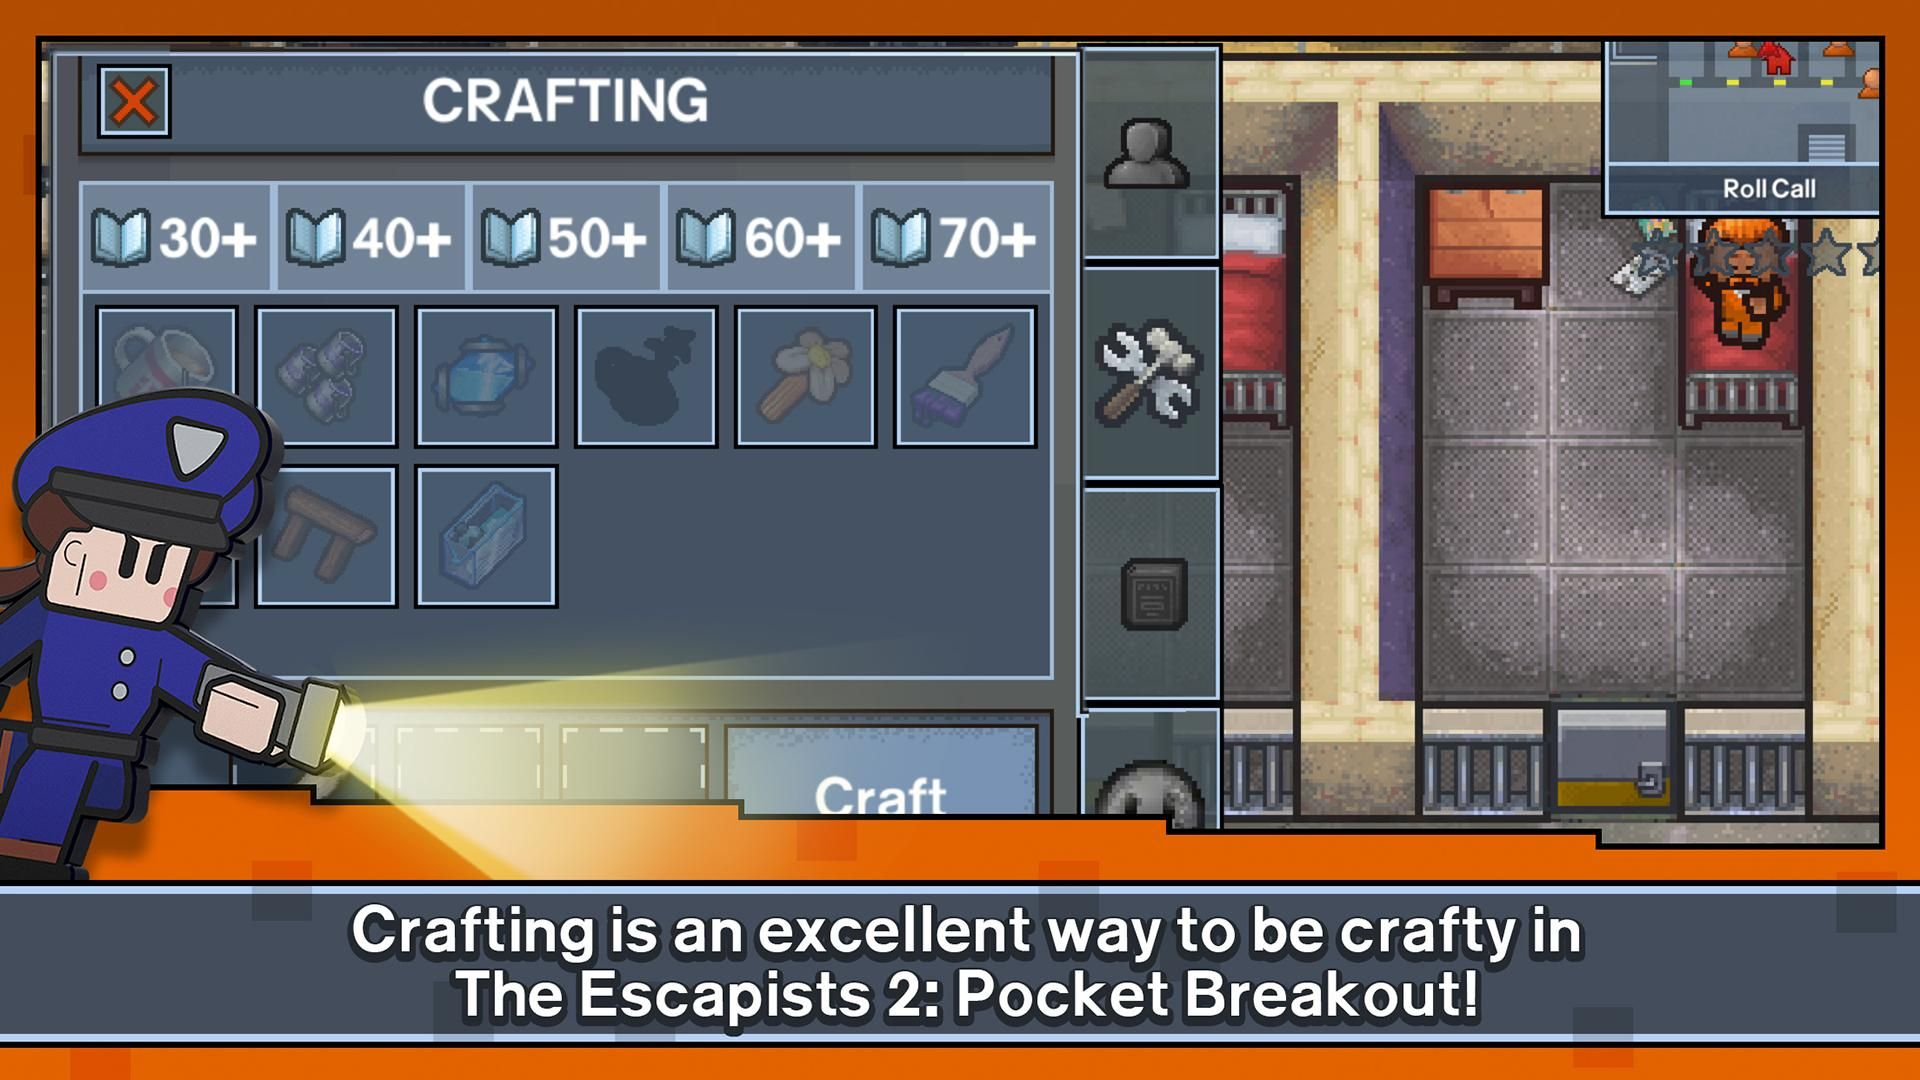 逃脱者2(The Escapists 2) 游戏截图5